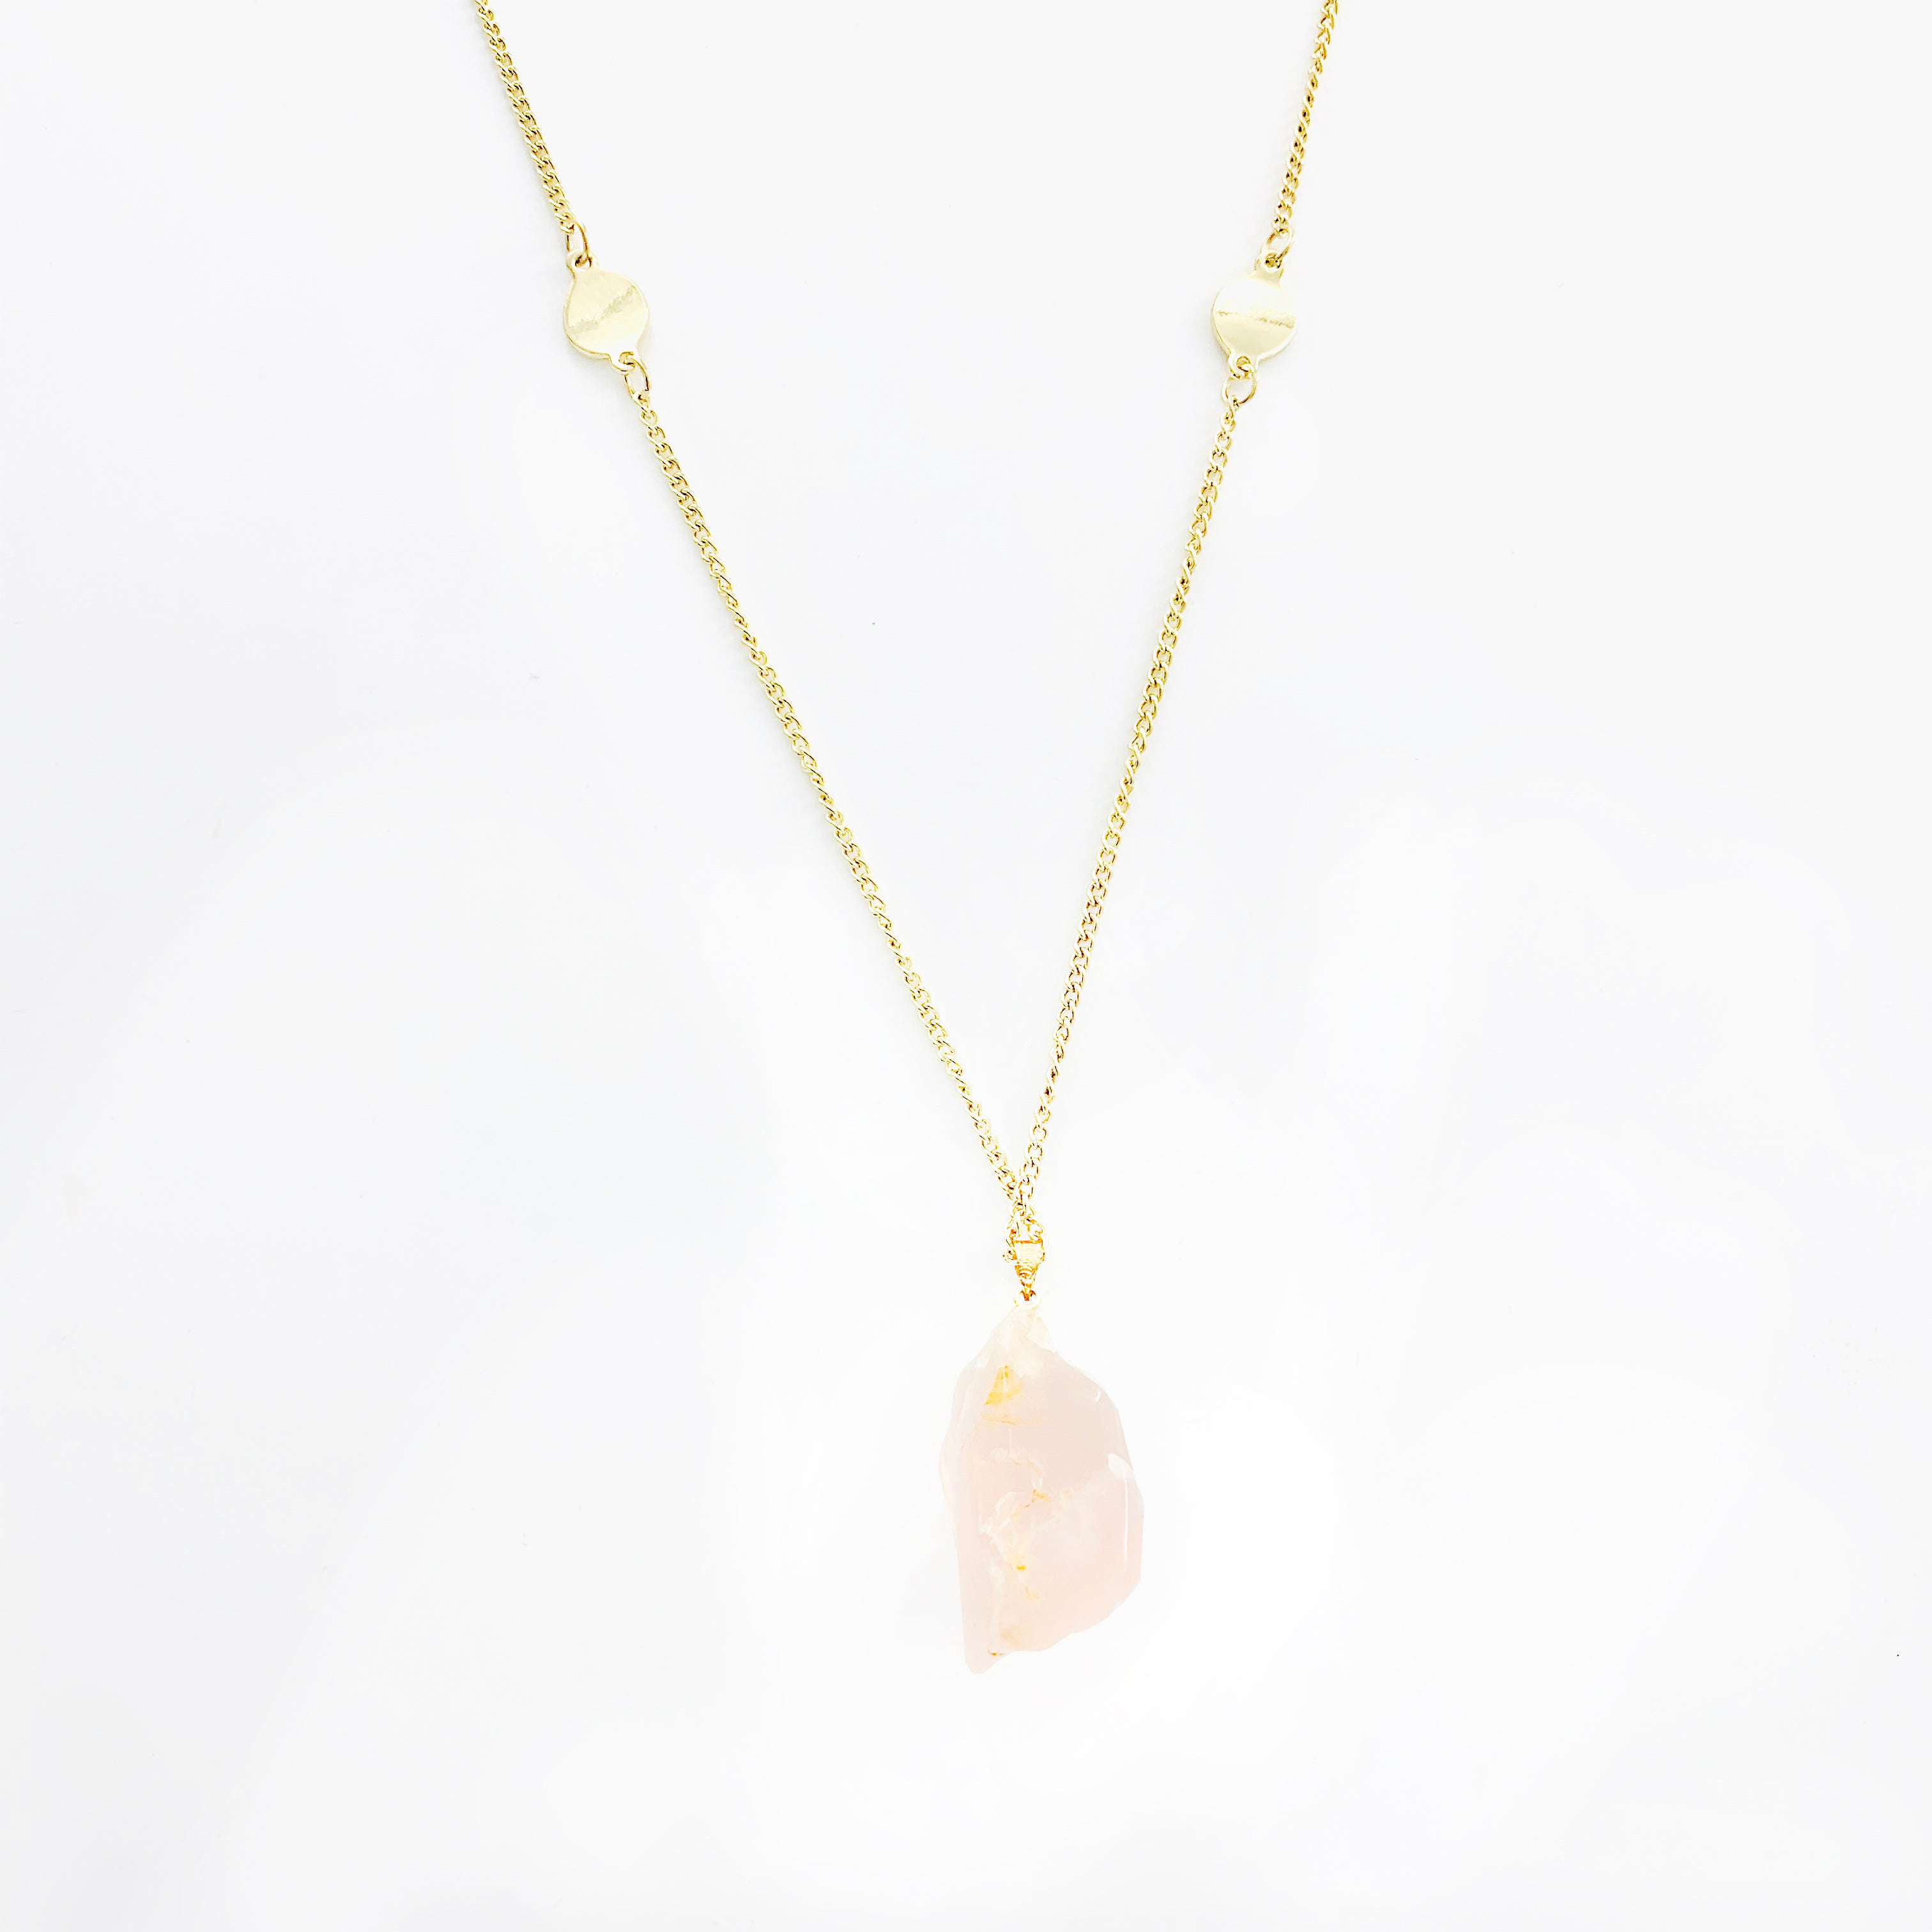 Necklace - Pink Stone on Gold Chain